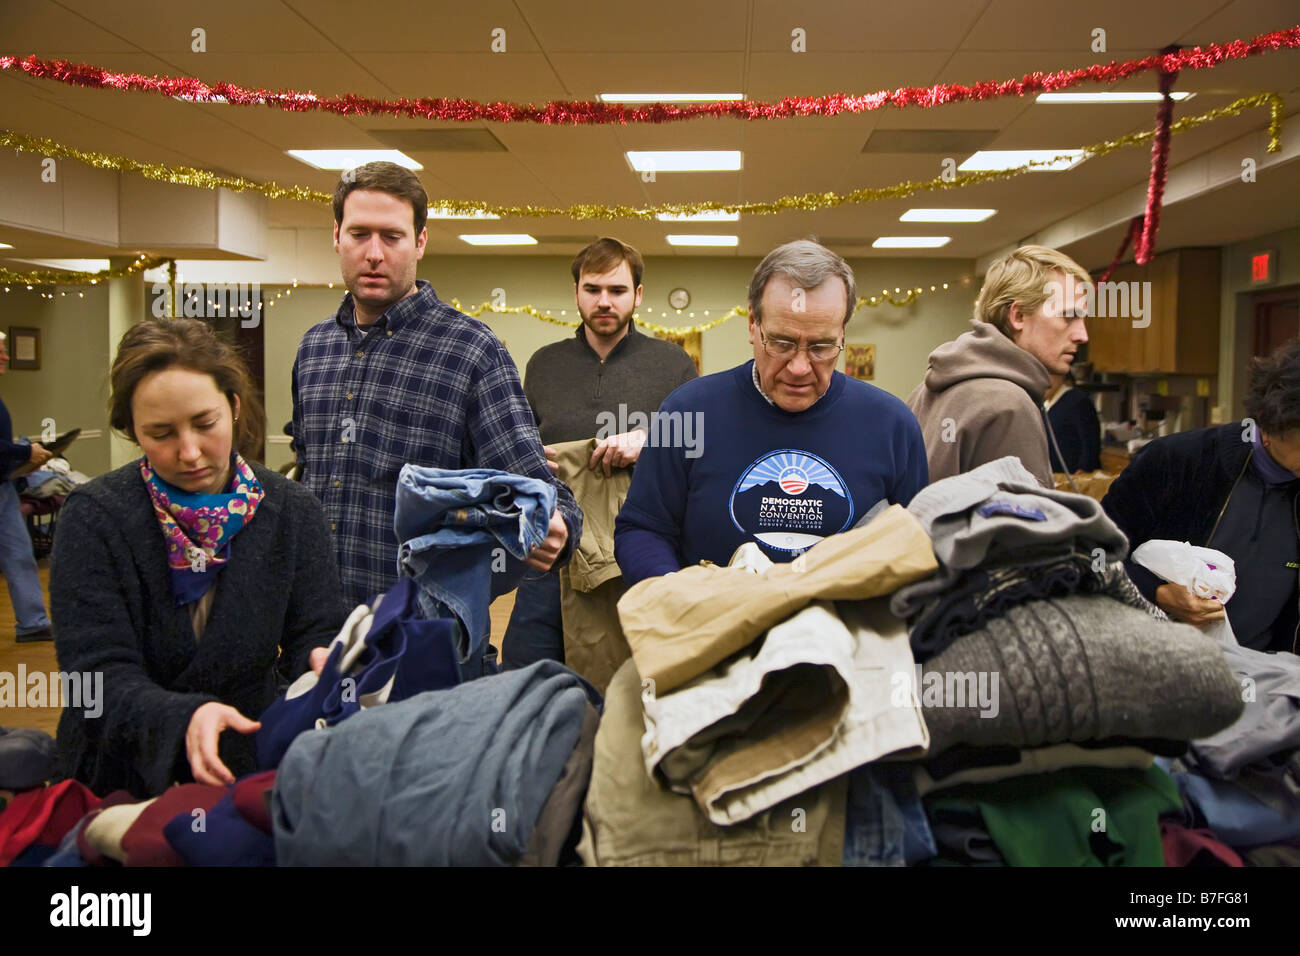 Volunteers Sort Clothing Donated for the Homeless - Stock Image